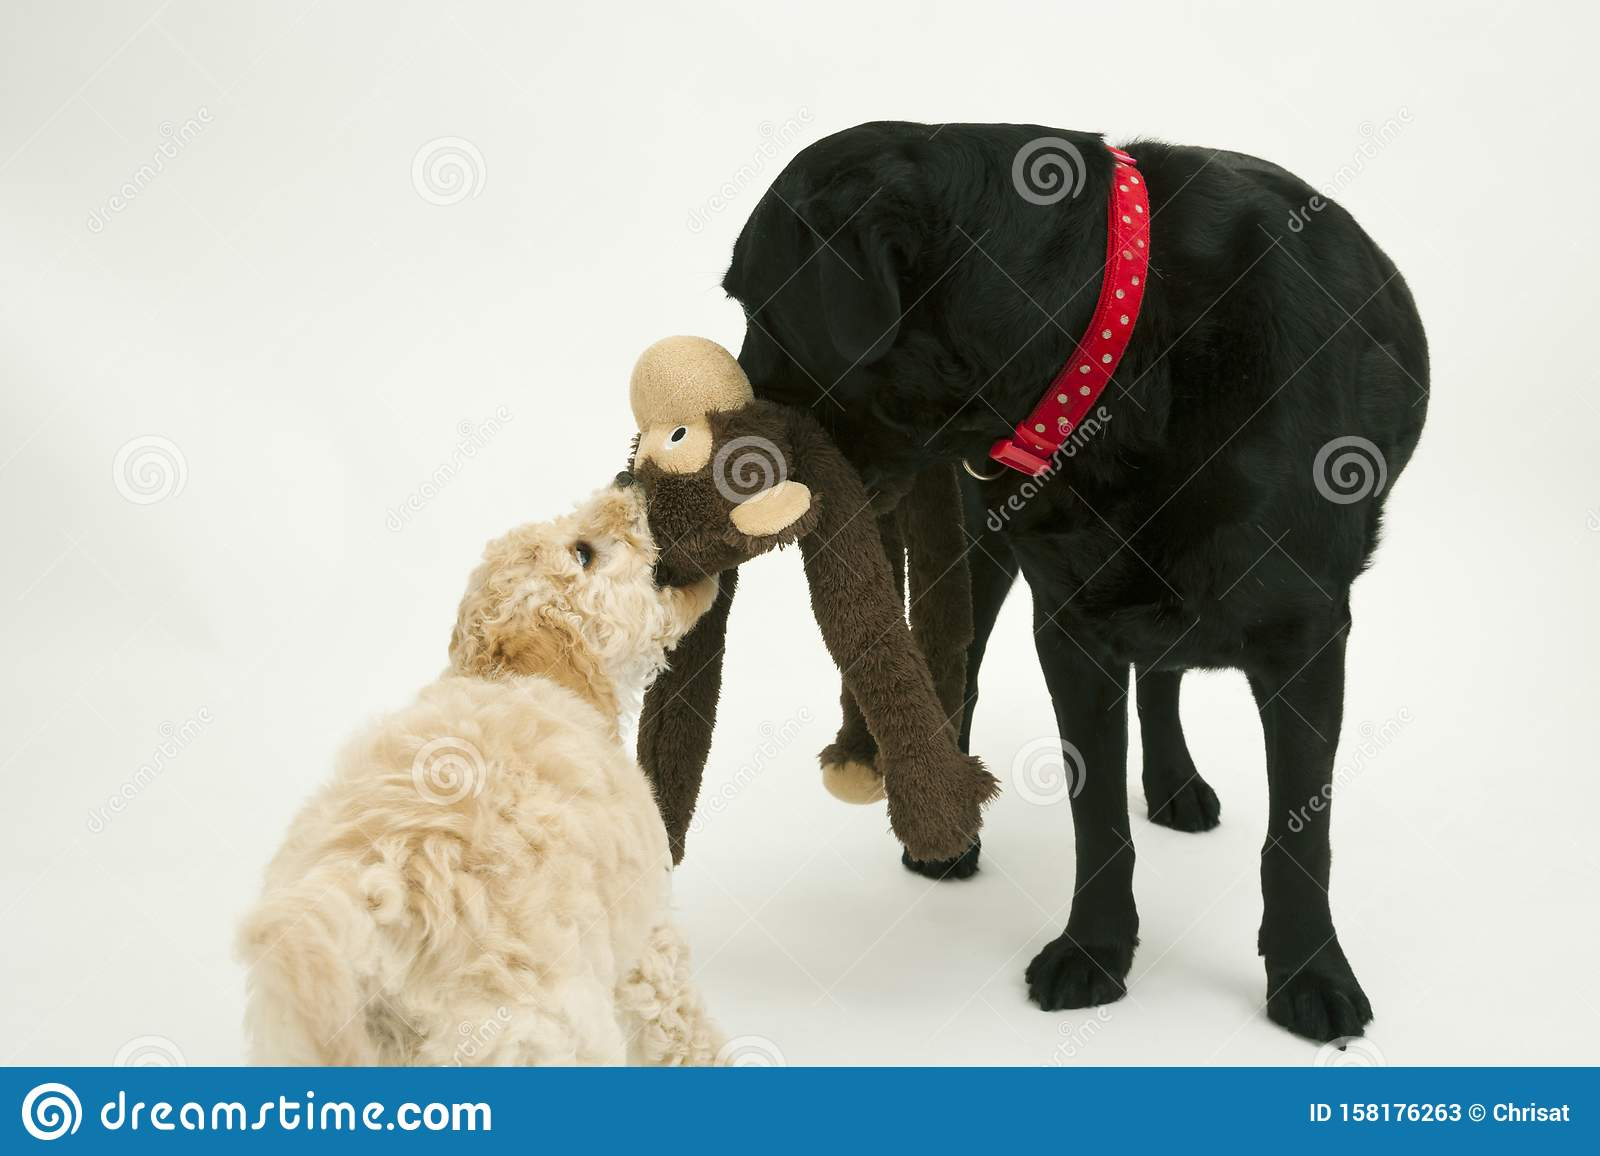 An Old Black Labrador Waits As A Cockapoo Puppy Tries To Take A Toy Away Stock Image Image Of Shot Horizontal 158176263